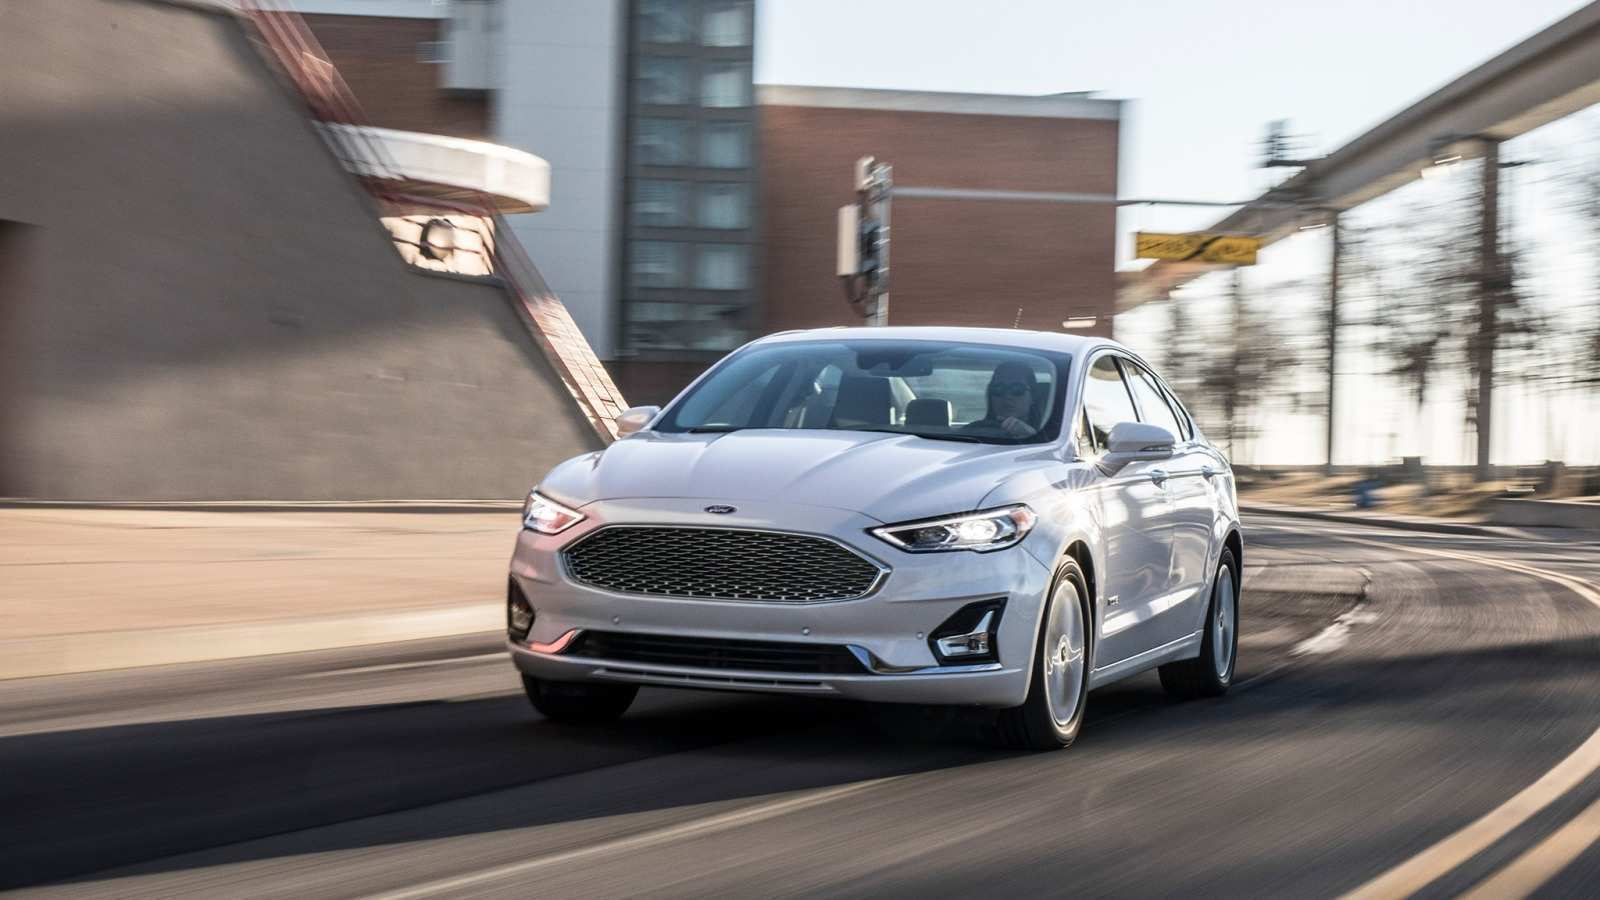 43 Concept of Best Ford 2019 Hybrid Vehicles Redesign And Price Specs and Review with Best Ford 2019 Hybrid Vehicles Redesign And Price